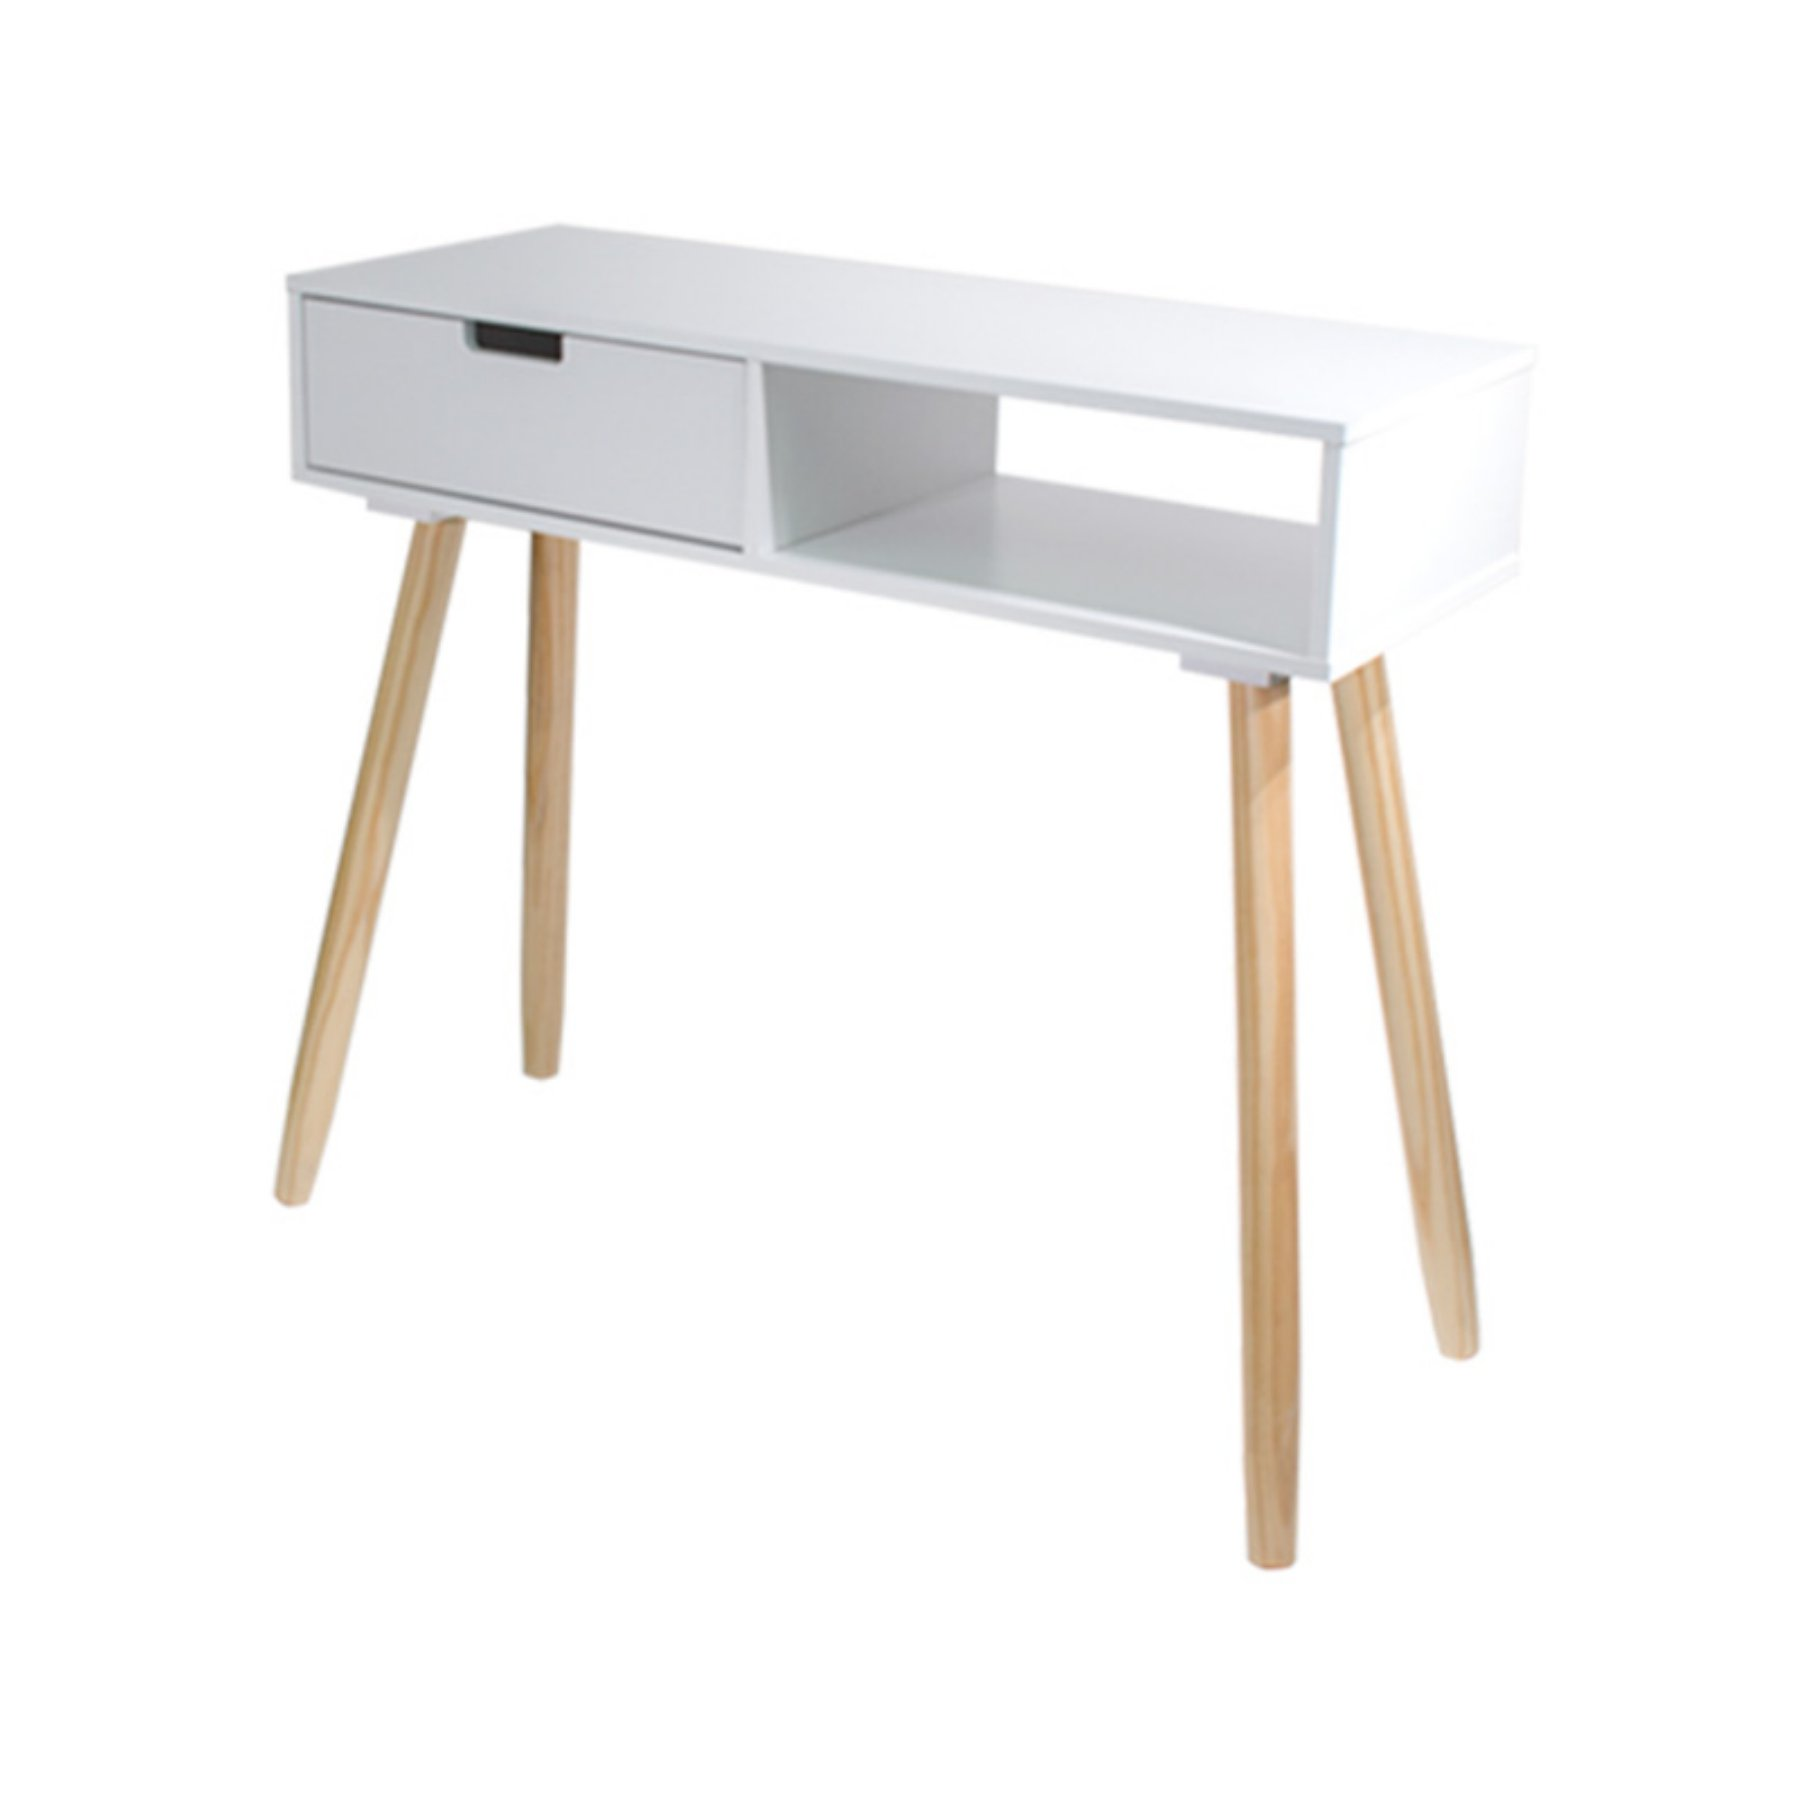 Jia Home Dory Mid Century Modern Console Table  White